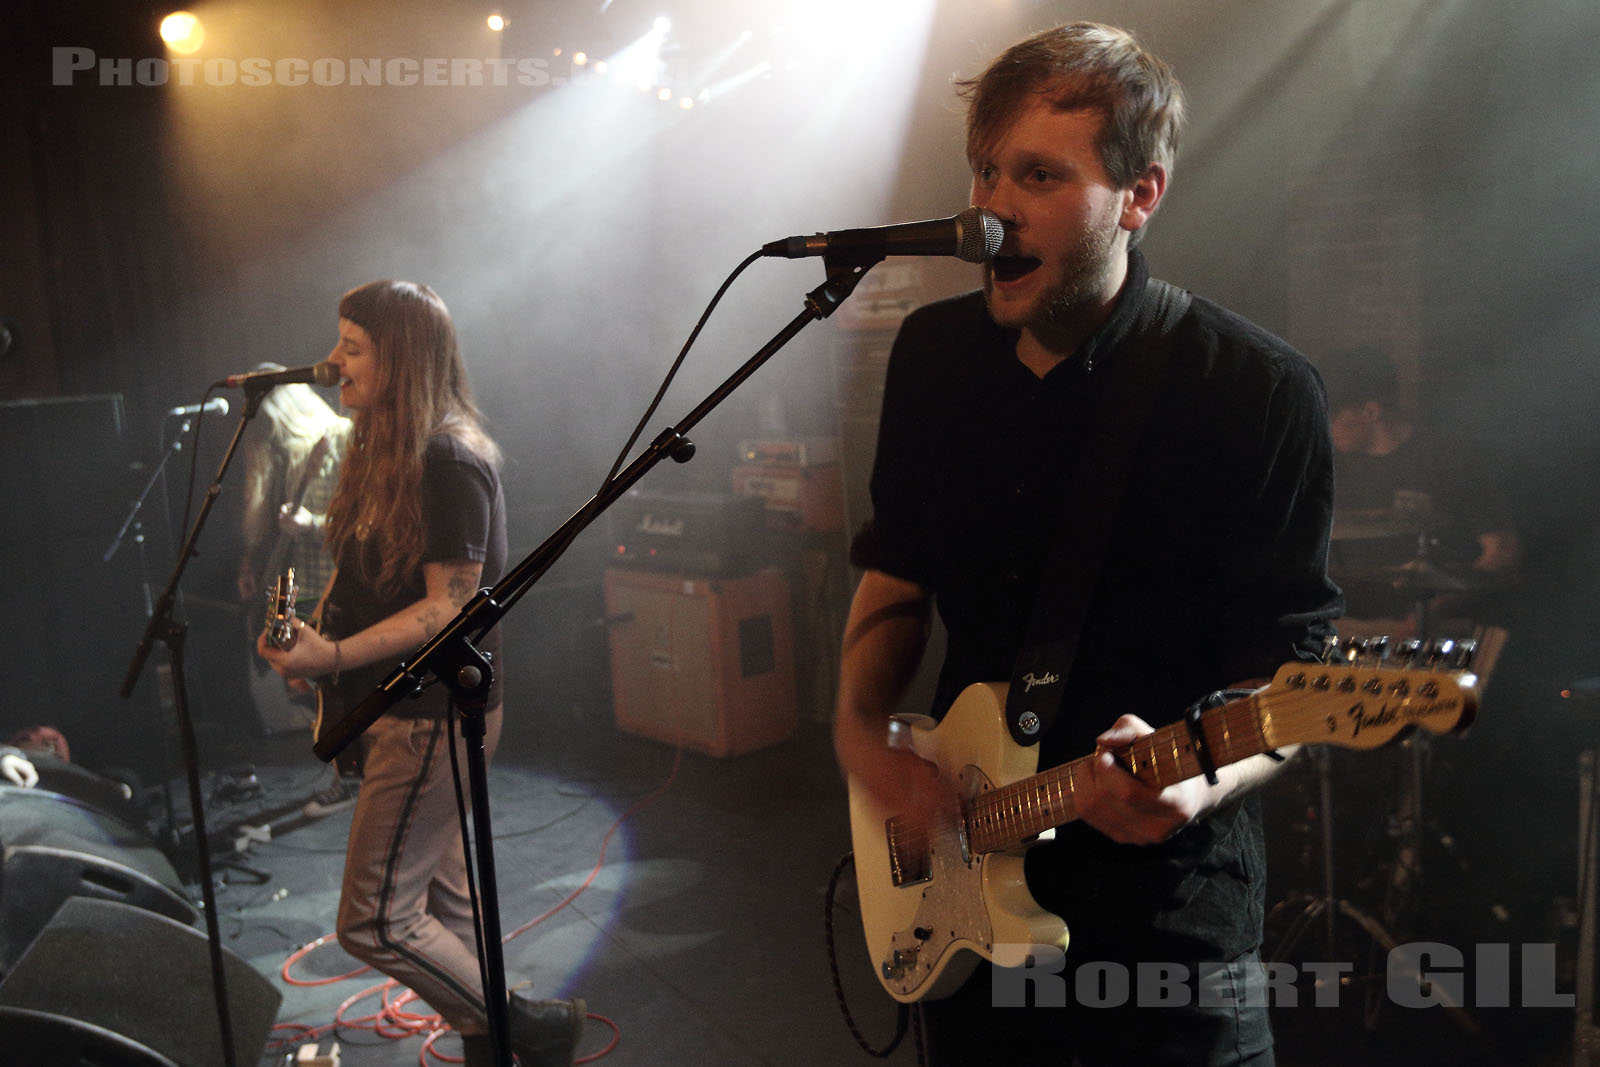 MUNCIE GIRLS - 2019-01-28 - PARIS - La Maroquinerie